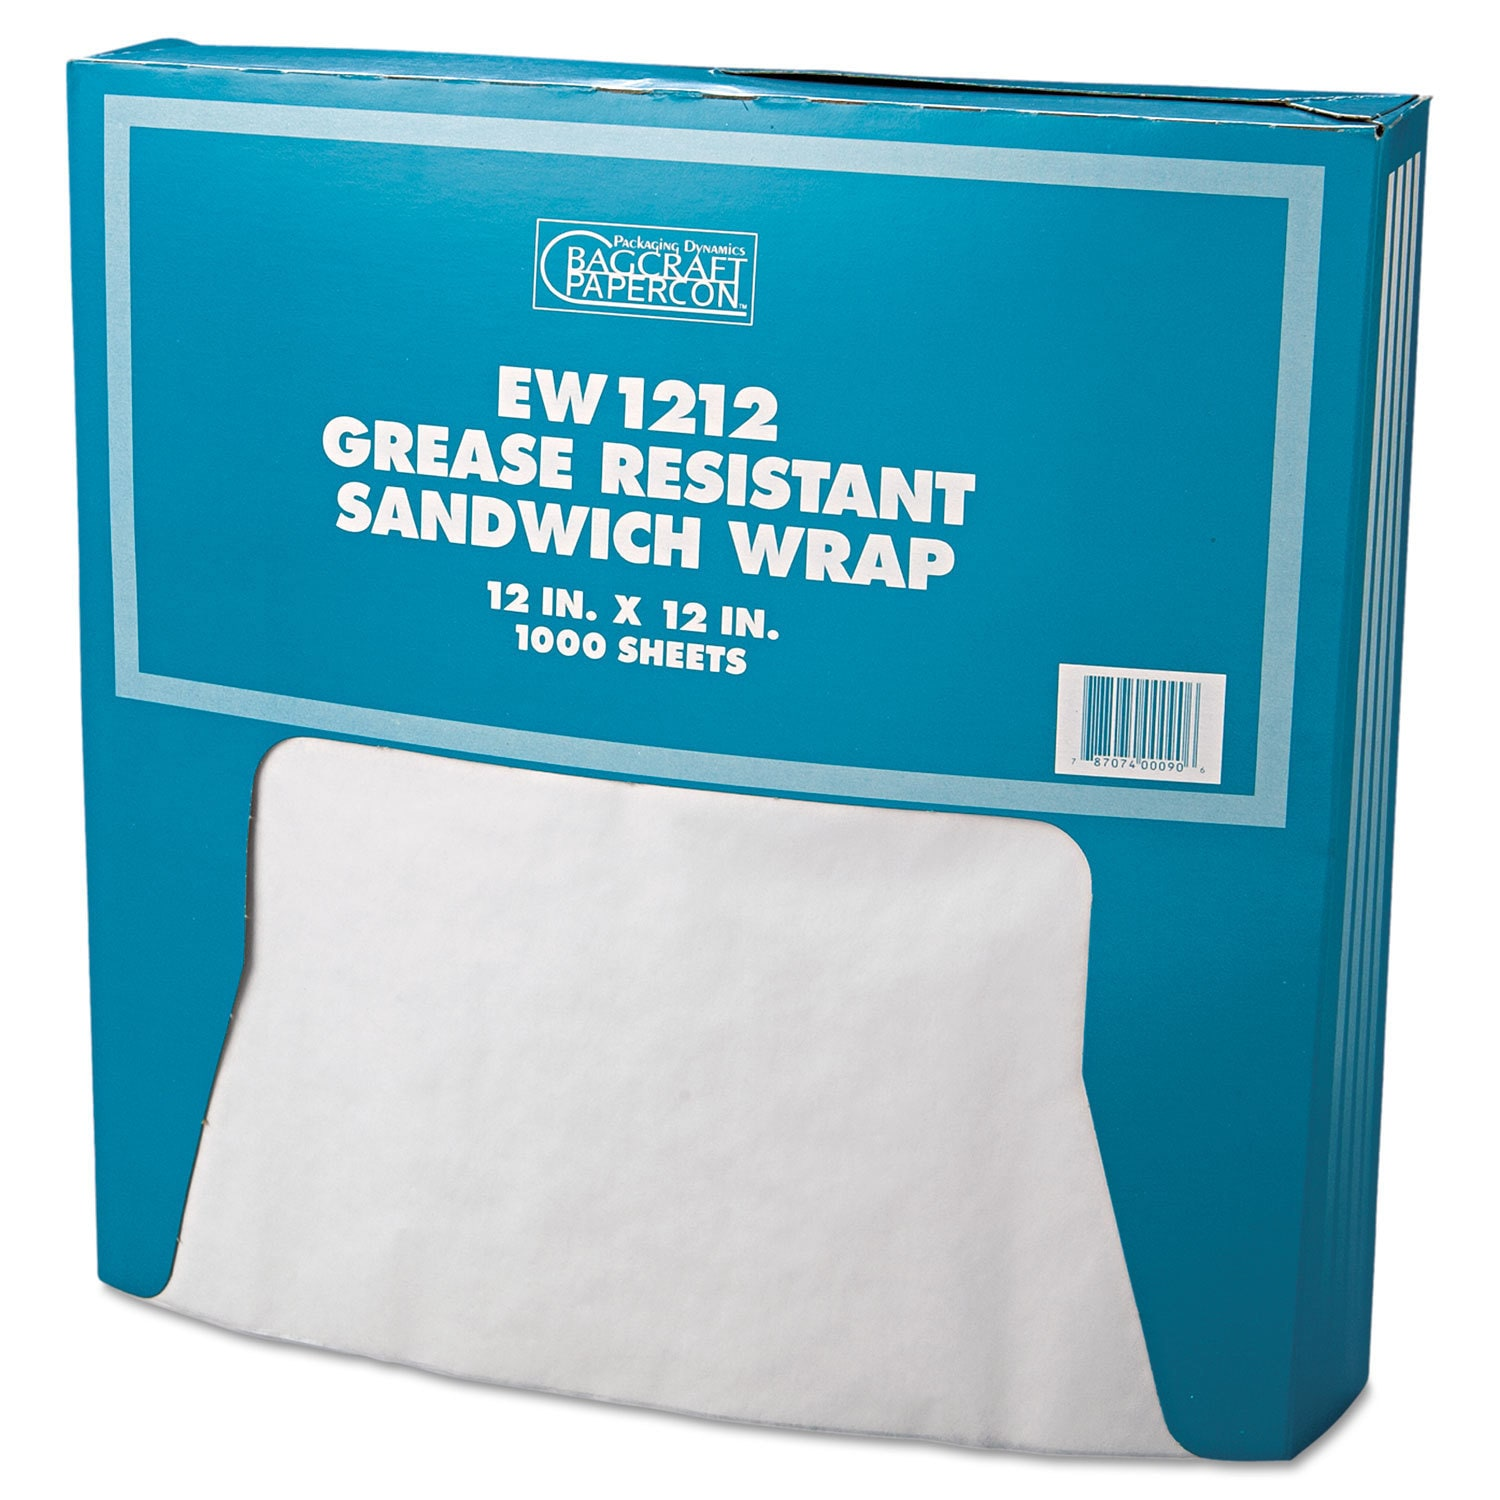 Bagcraft Papercon White Grease-Resistant Paper Wrap/Liner...